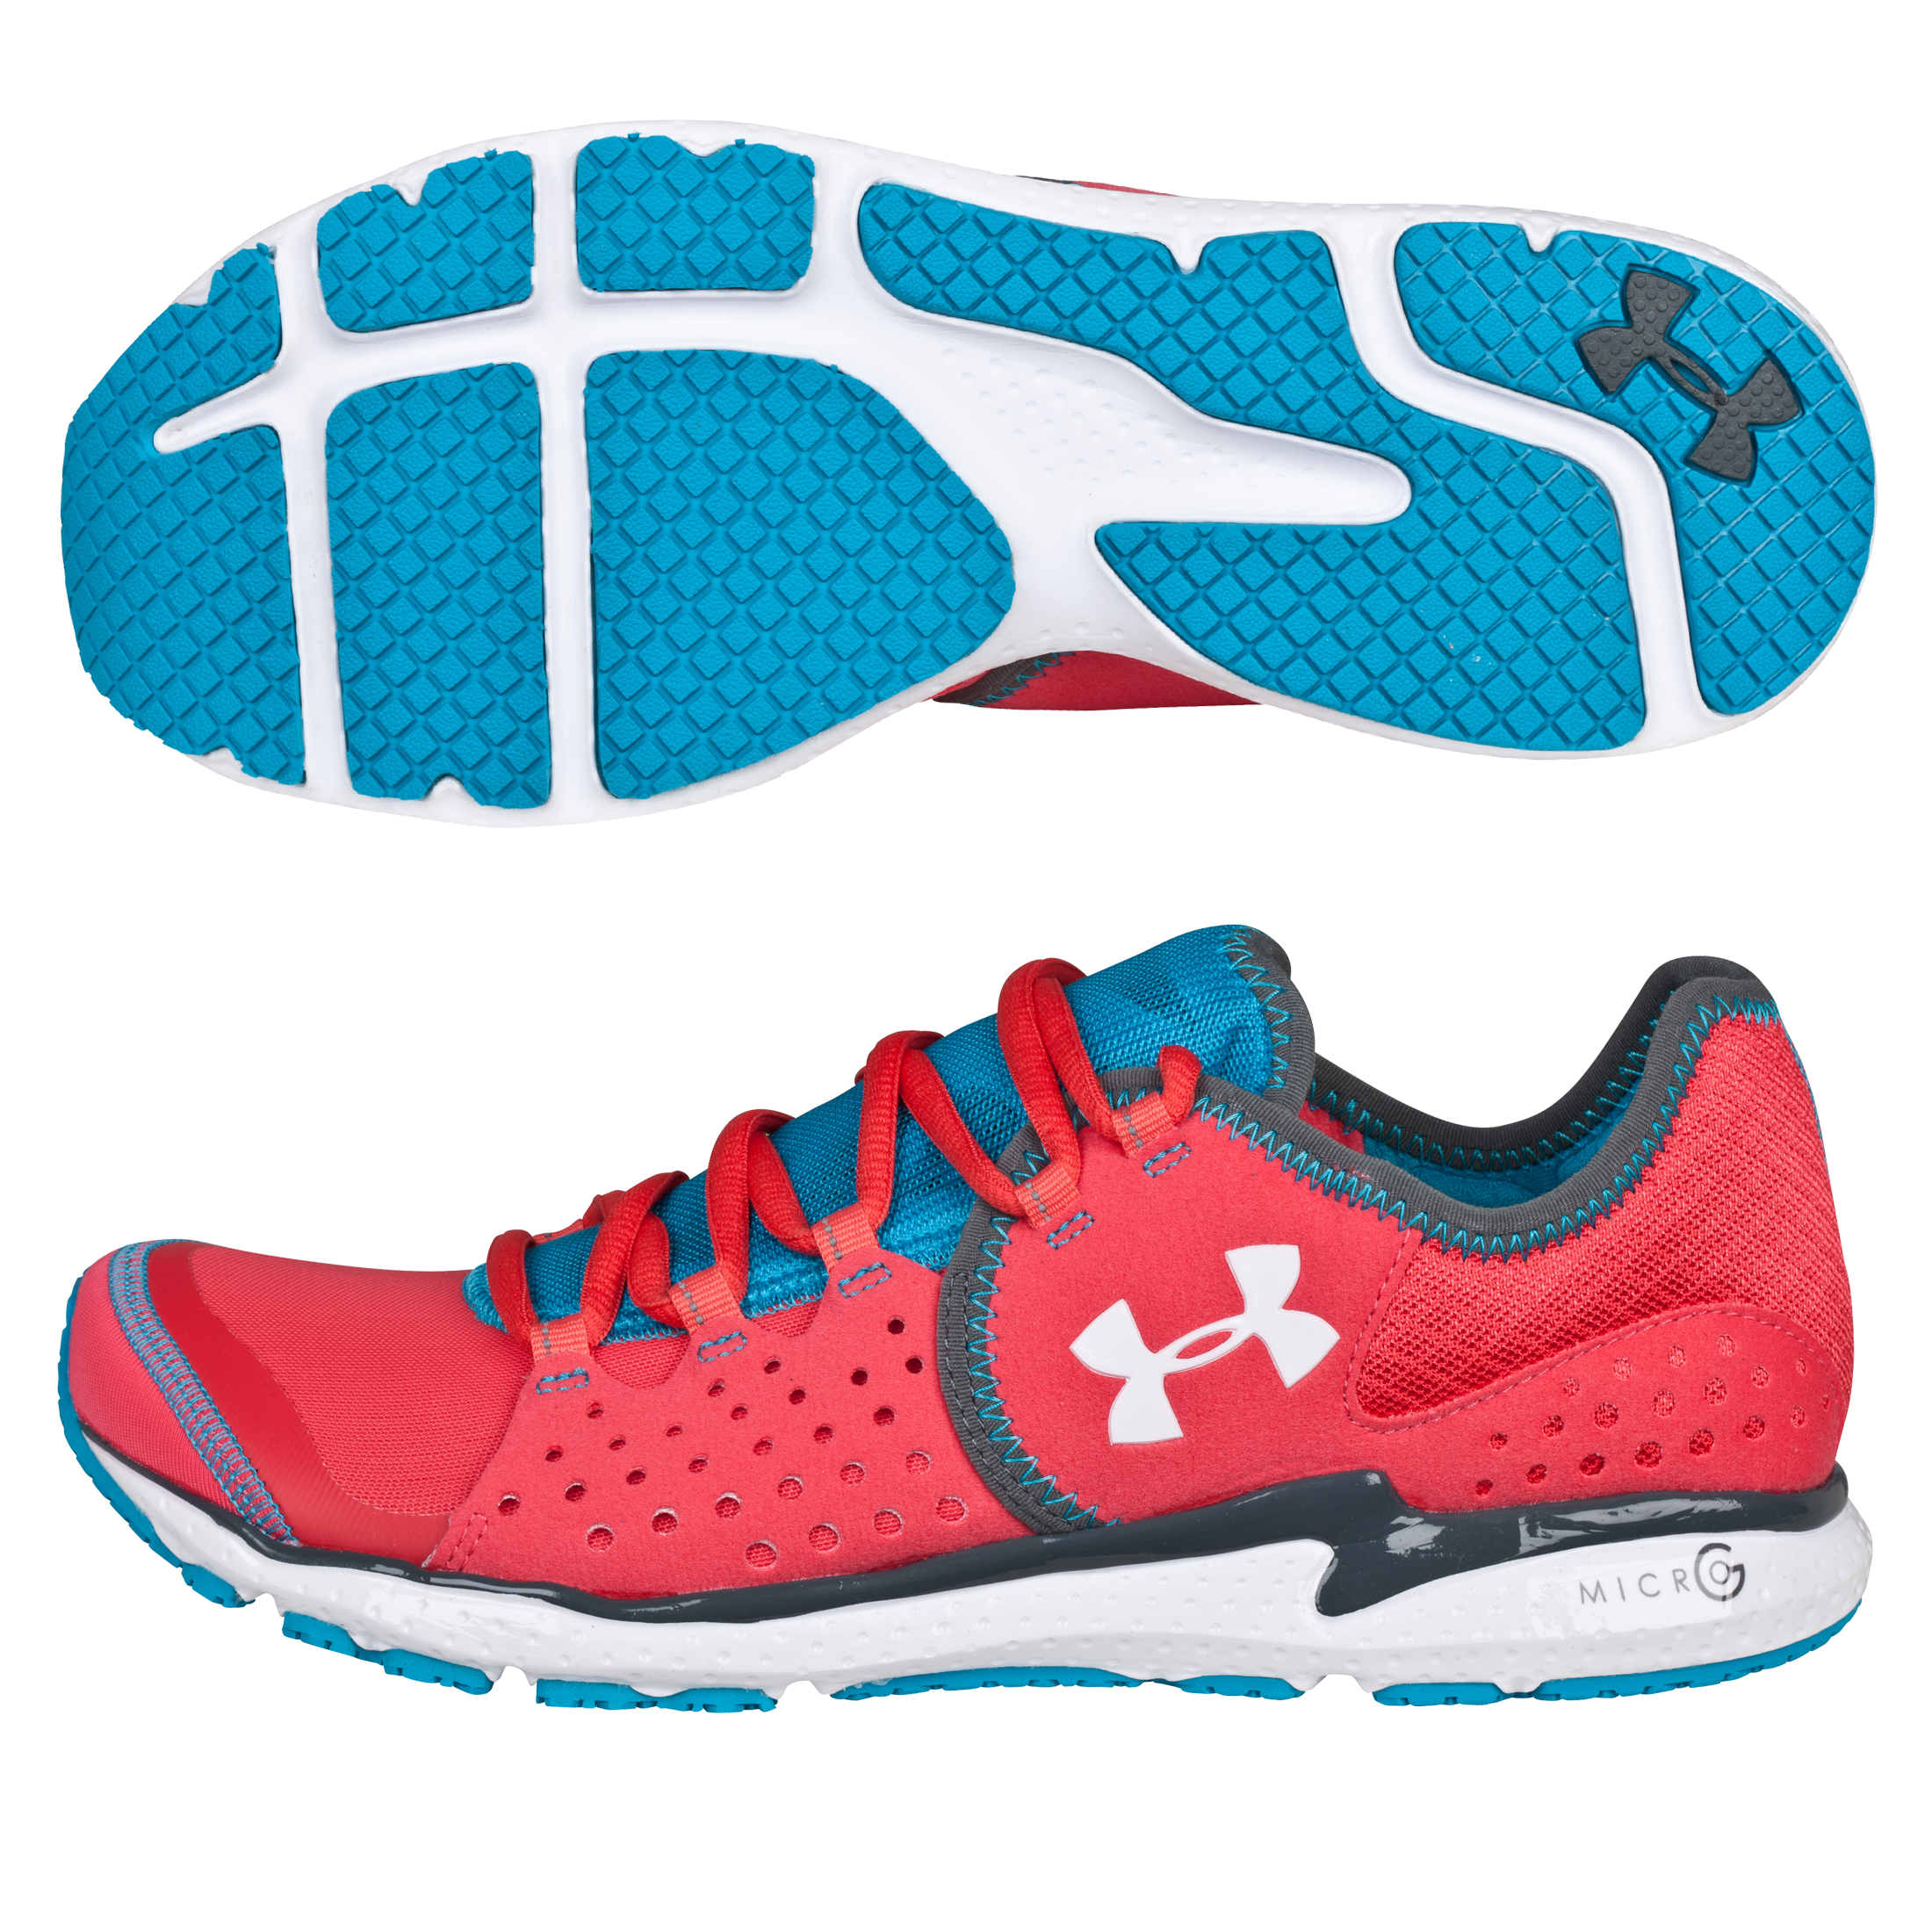 Under Armour Micro G Mantis - Hibiscus/White/Deceit - Womens